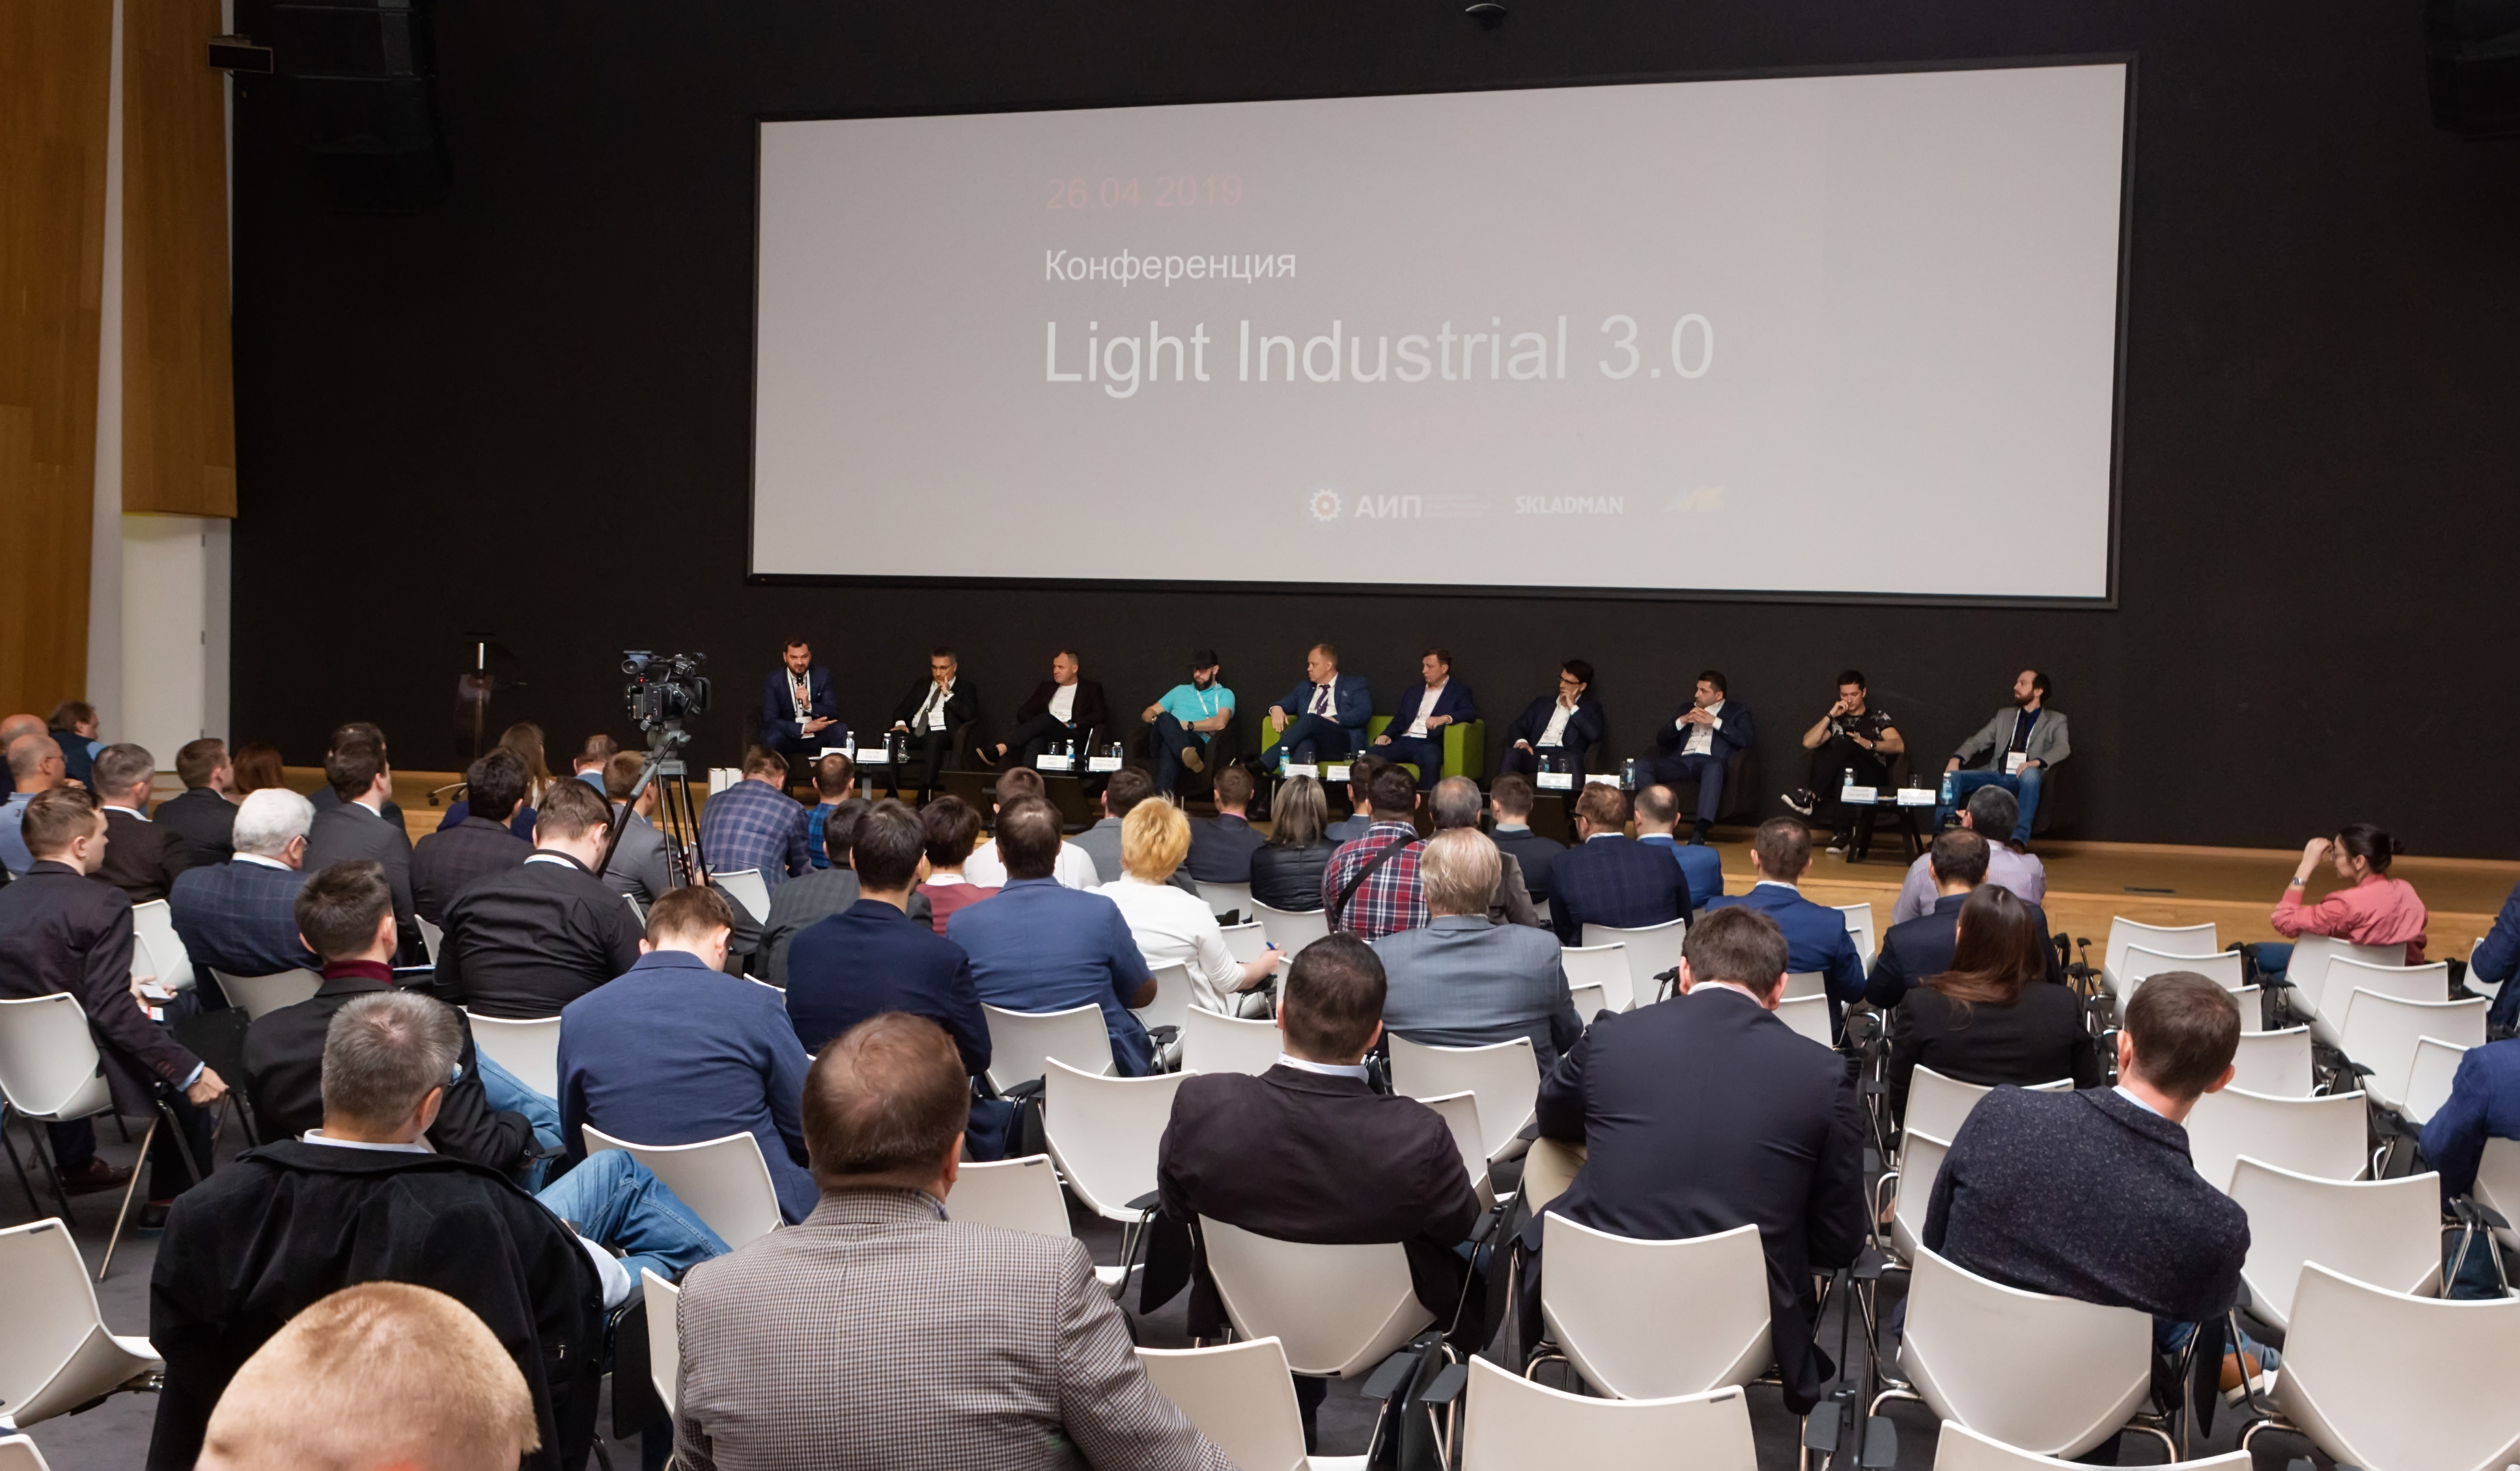 Light Industrial 3.0 Склады растут вверх